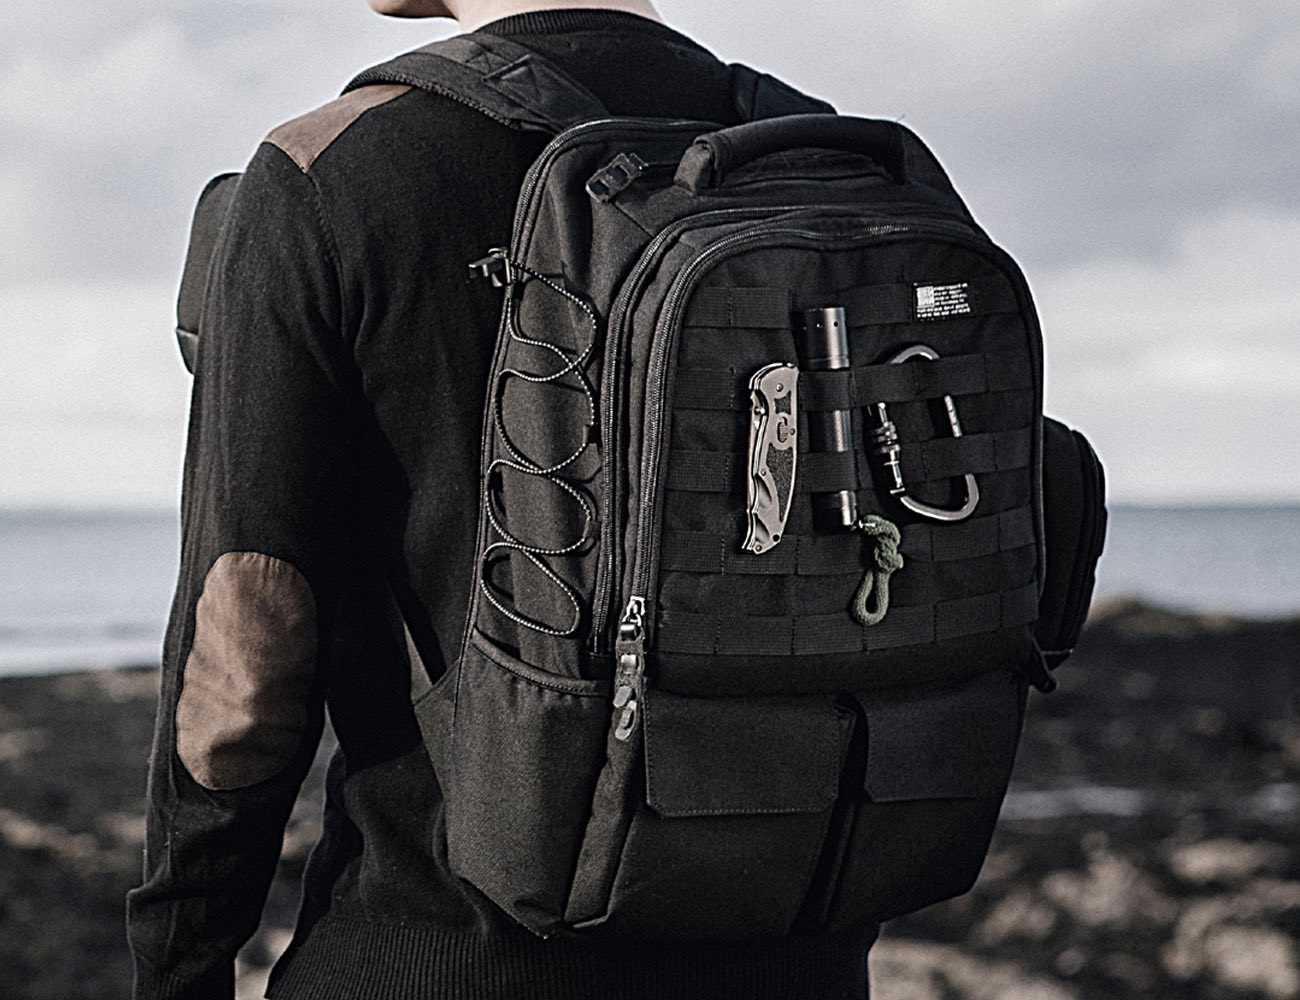 Eshena Tactical City Pack 187 Review